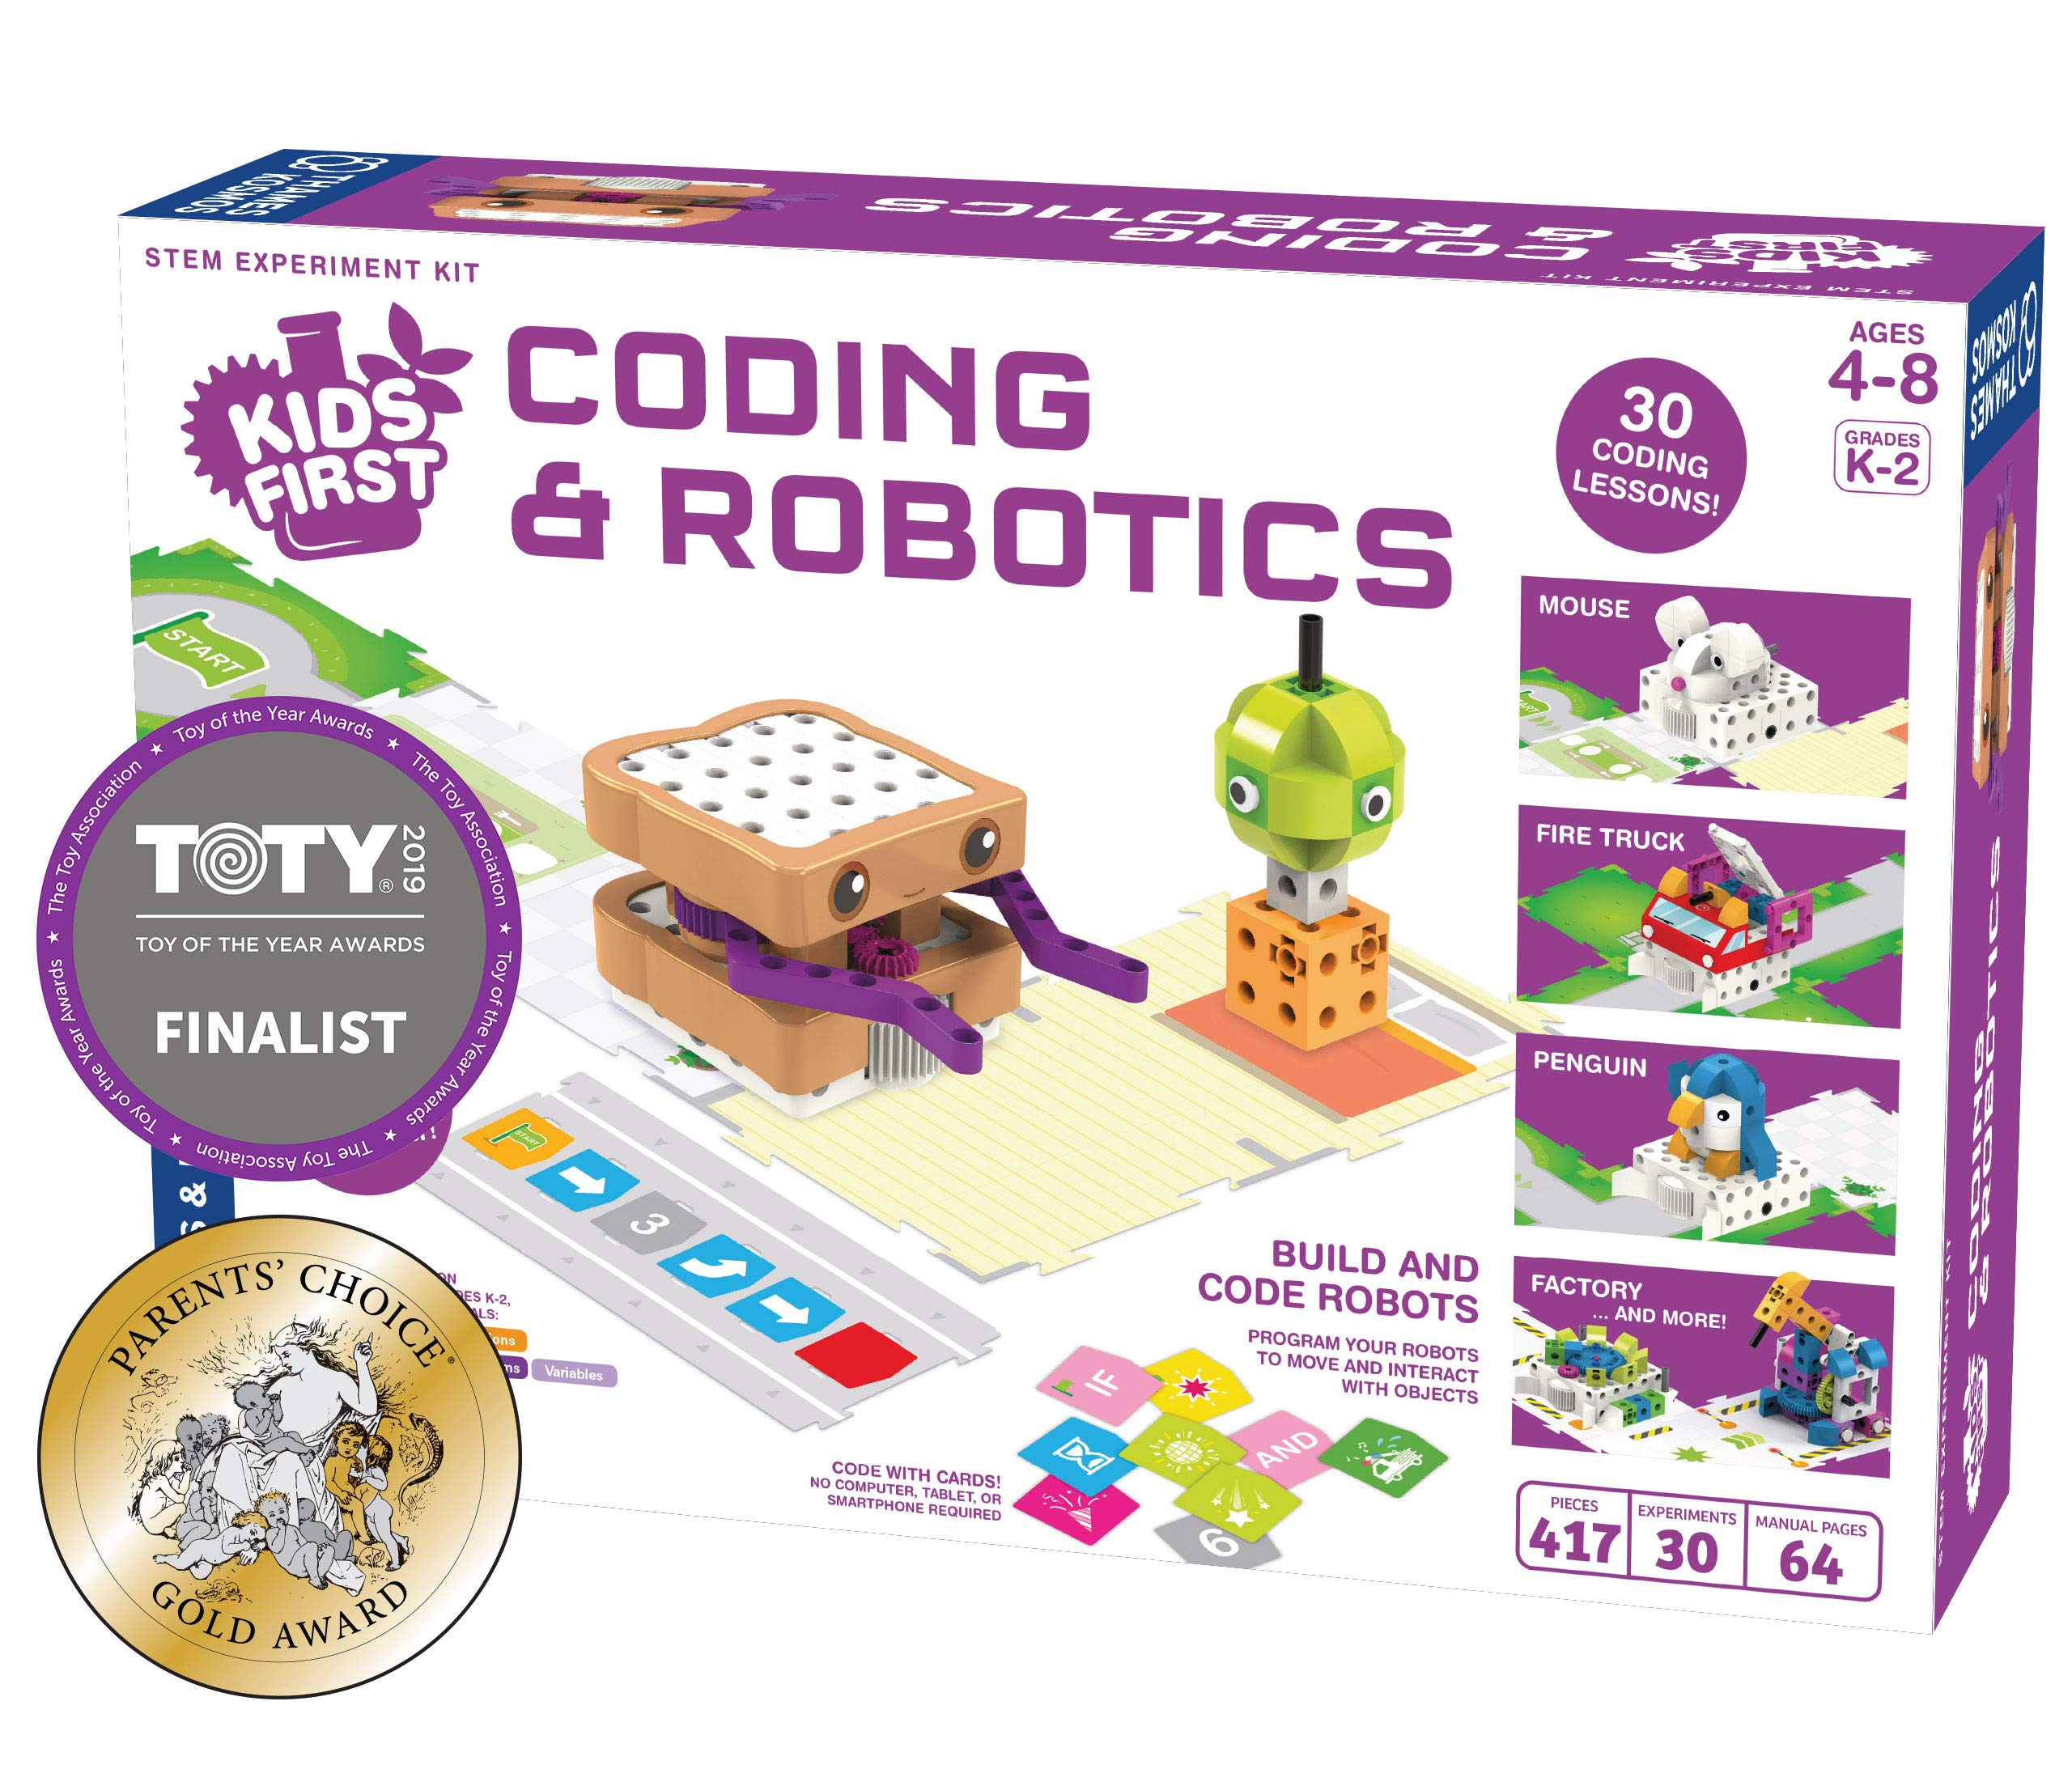 Thames & Kosmos Kids First Coding & Robotics | No App Needed | Grades K-2 | Intro to Sequences, Loops, Functions, Conditions, Events, Algorithms, Variables | Parents' Choice Gold Award Winner by Thames & Kosmos